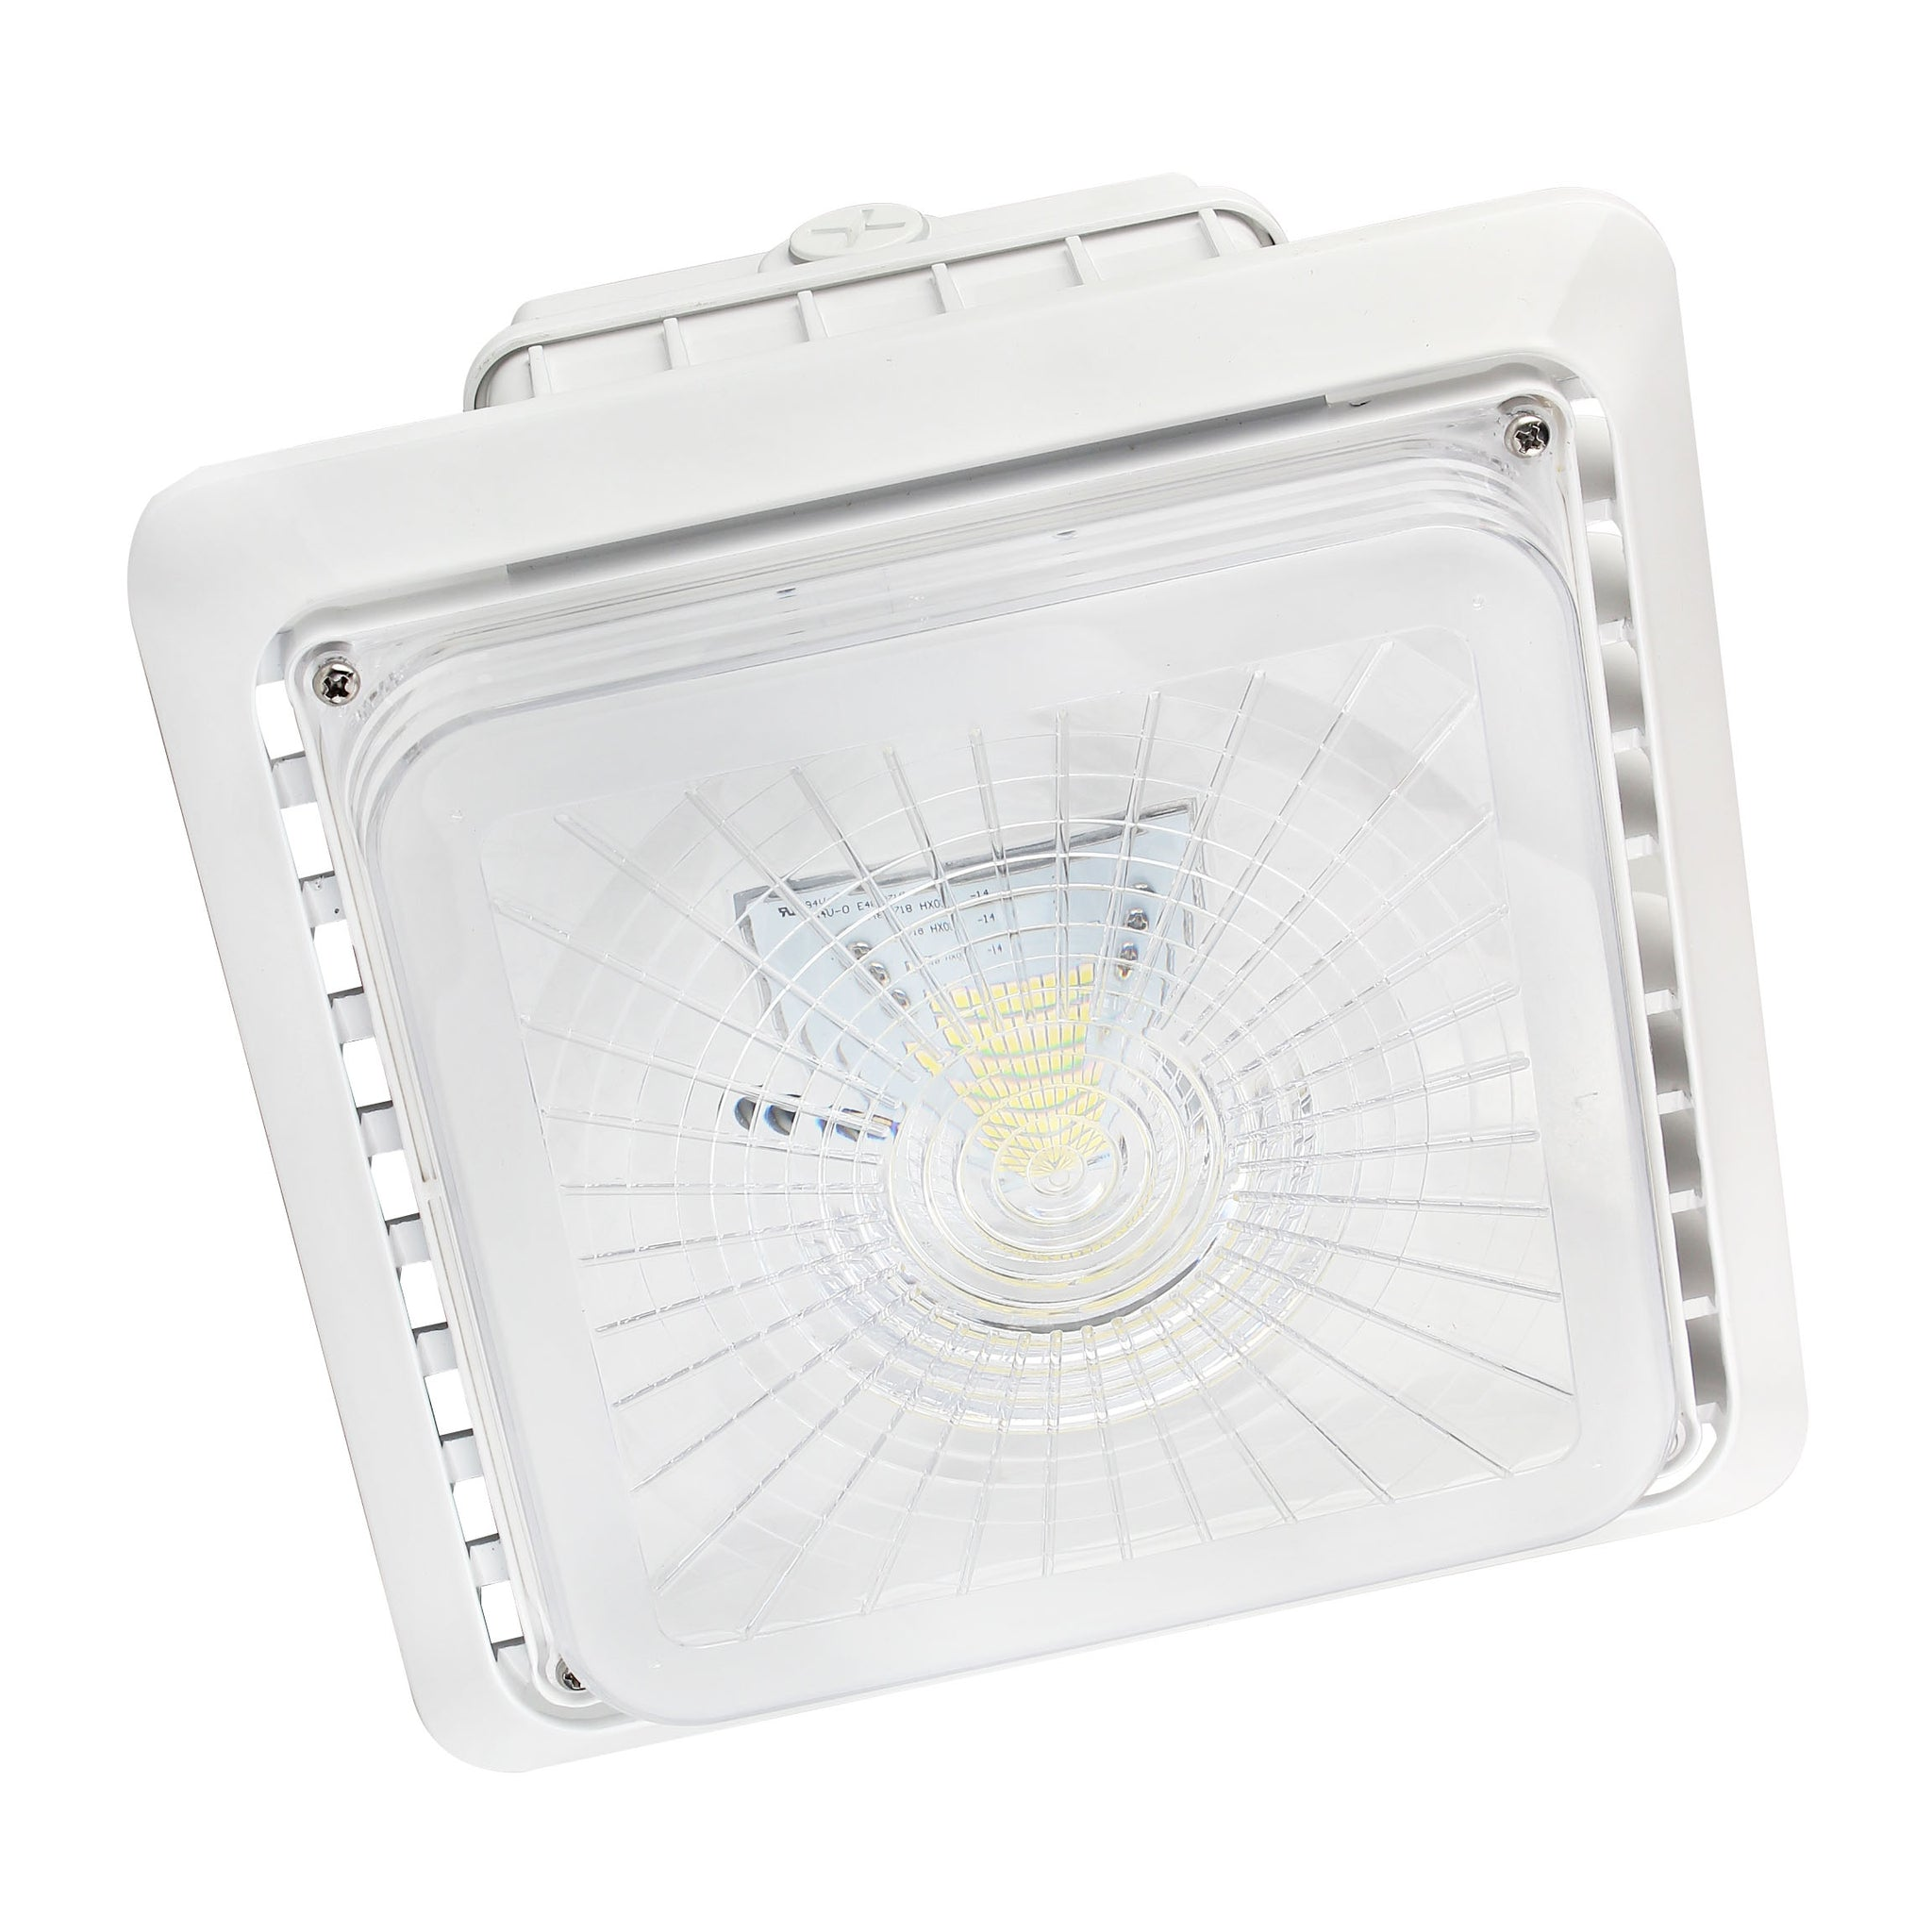 LED Parking Garage Light 55W - LED Canopy Light - DLC UL